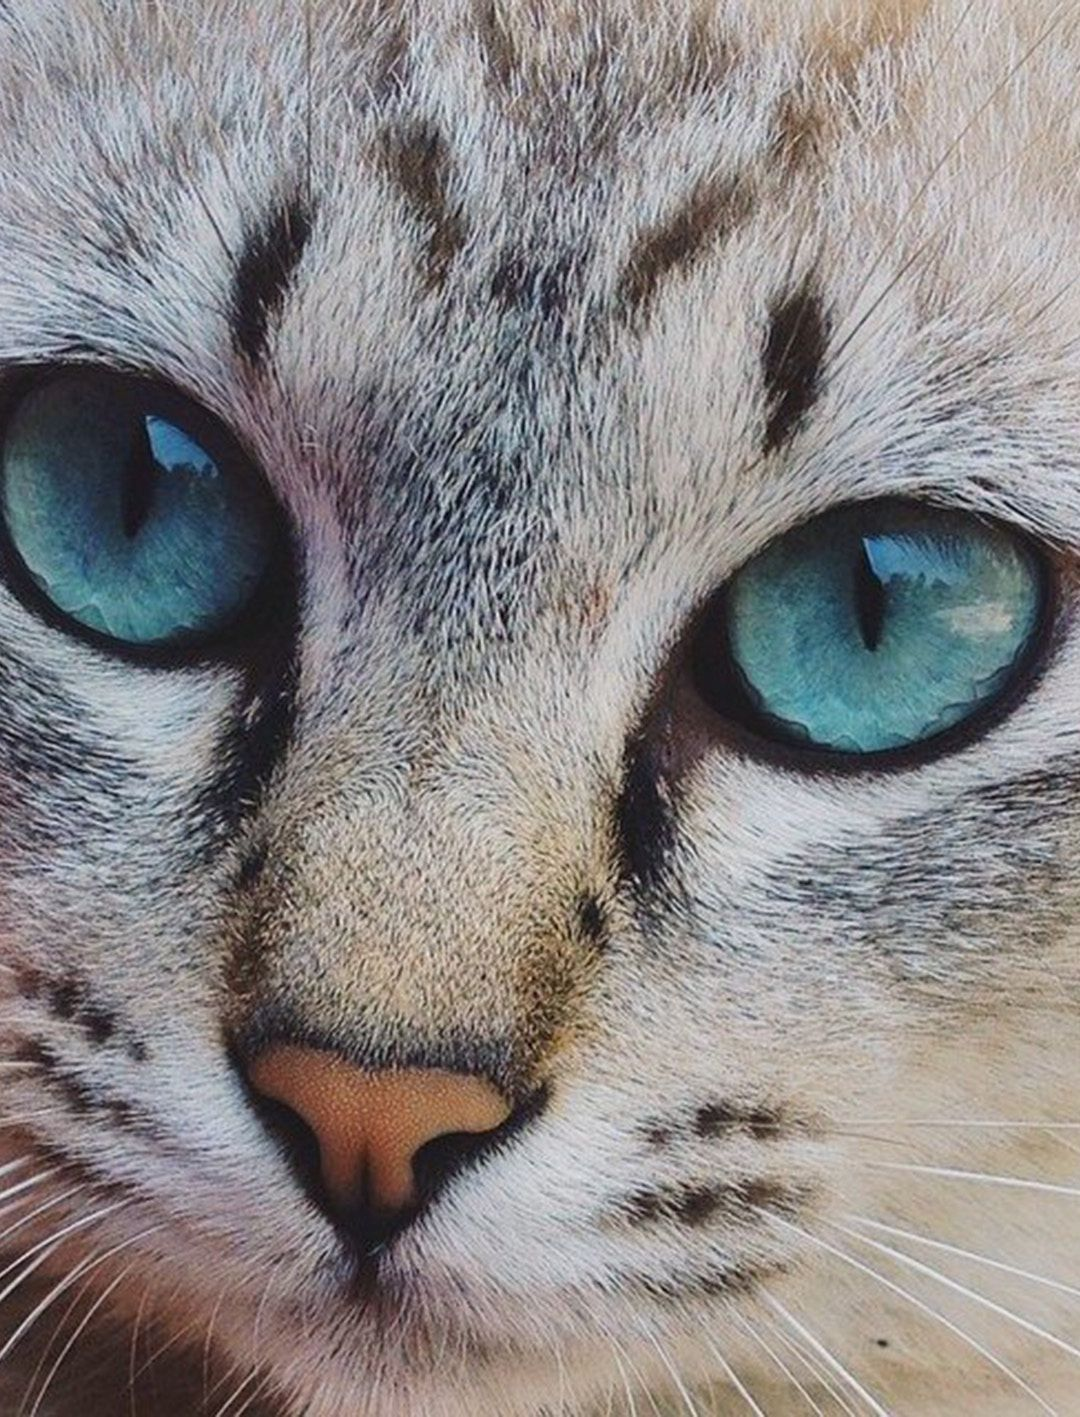 Iphone Wallpaper Tumblr Free High Resolution Hd Retina Cute Cats Cats Cats And Kittens